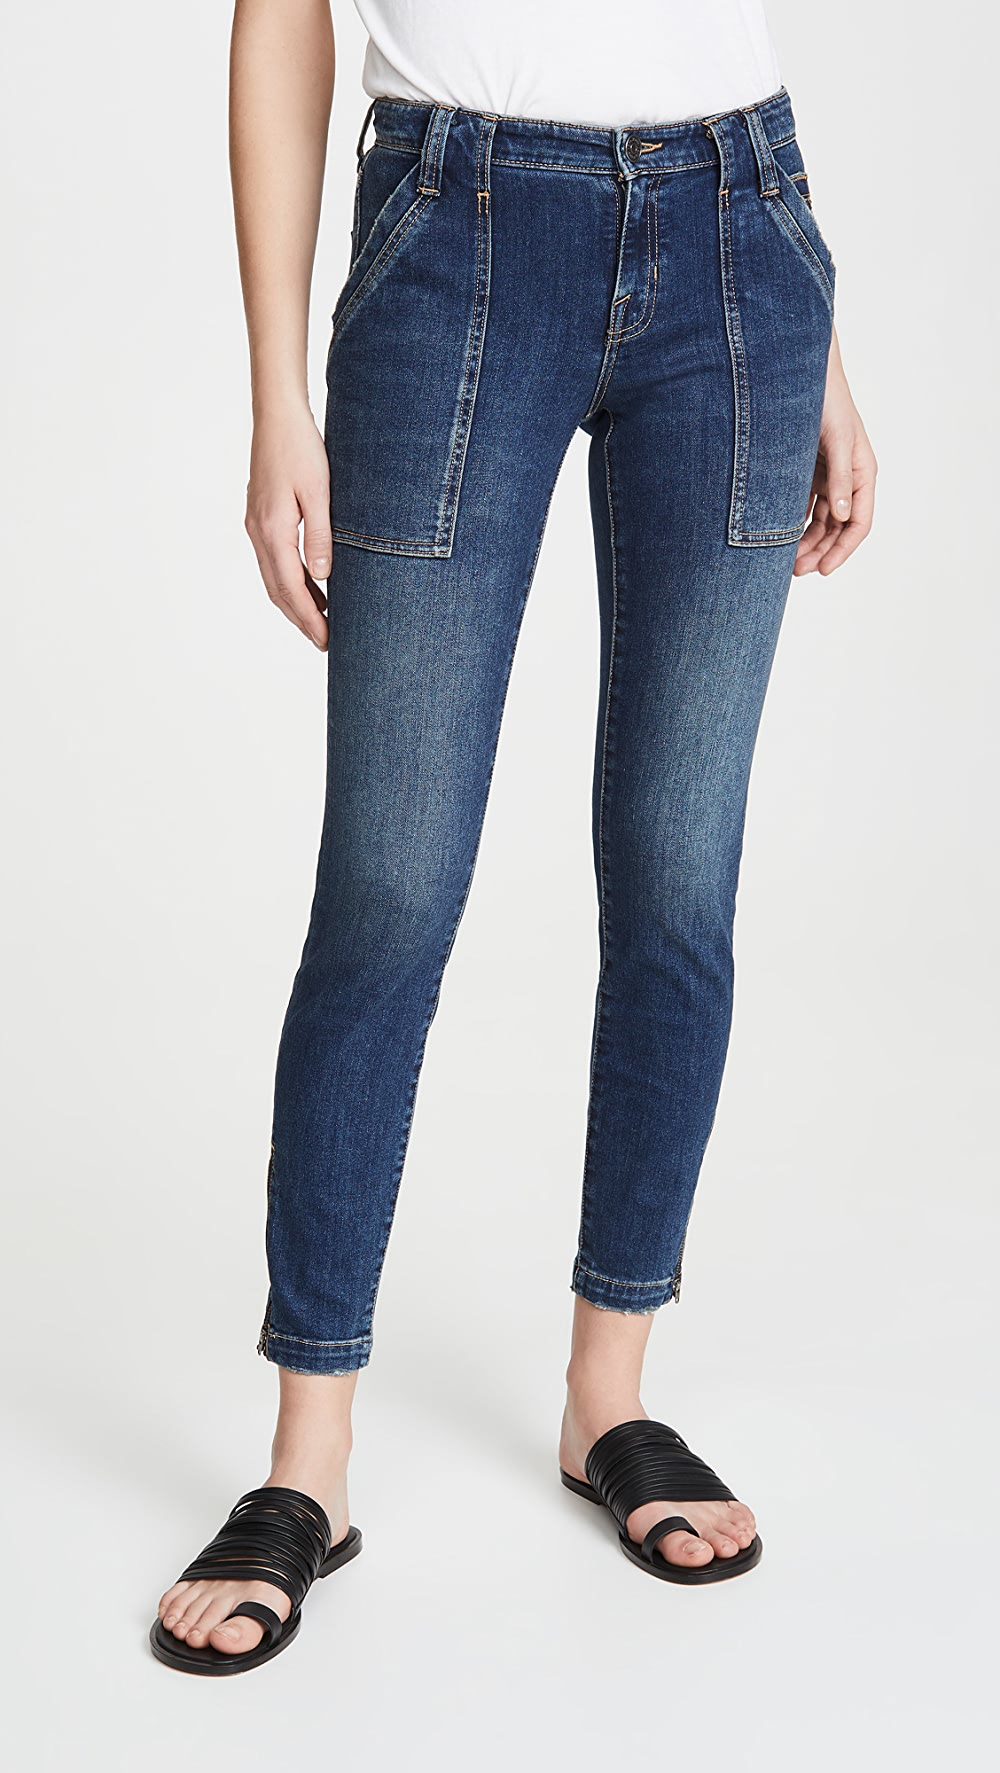 Industrious Joie - Denim Park Skinny D Jeans Fashionable(In) Style;